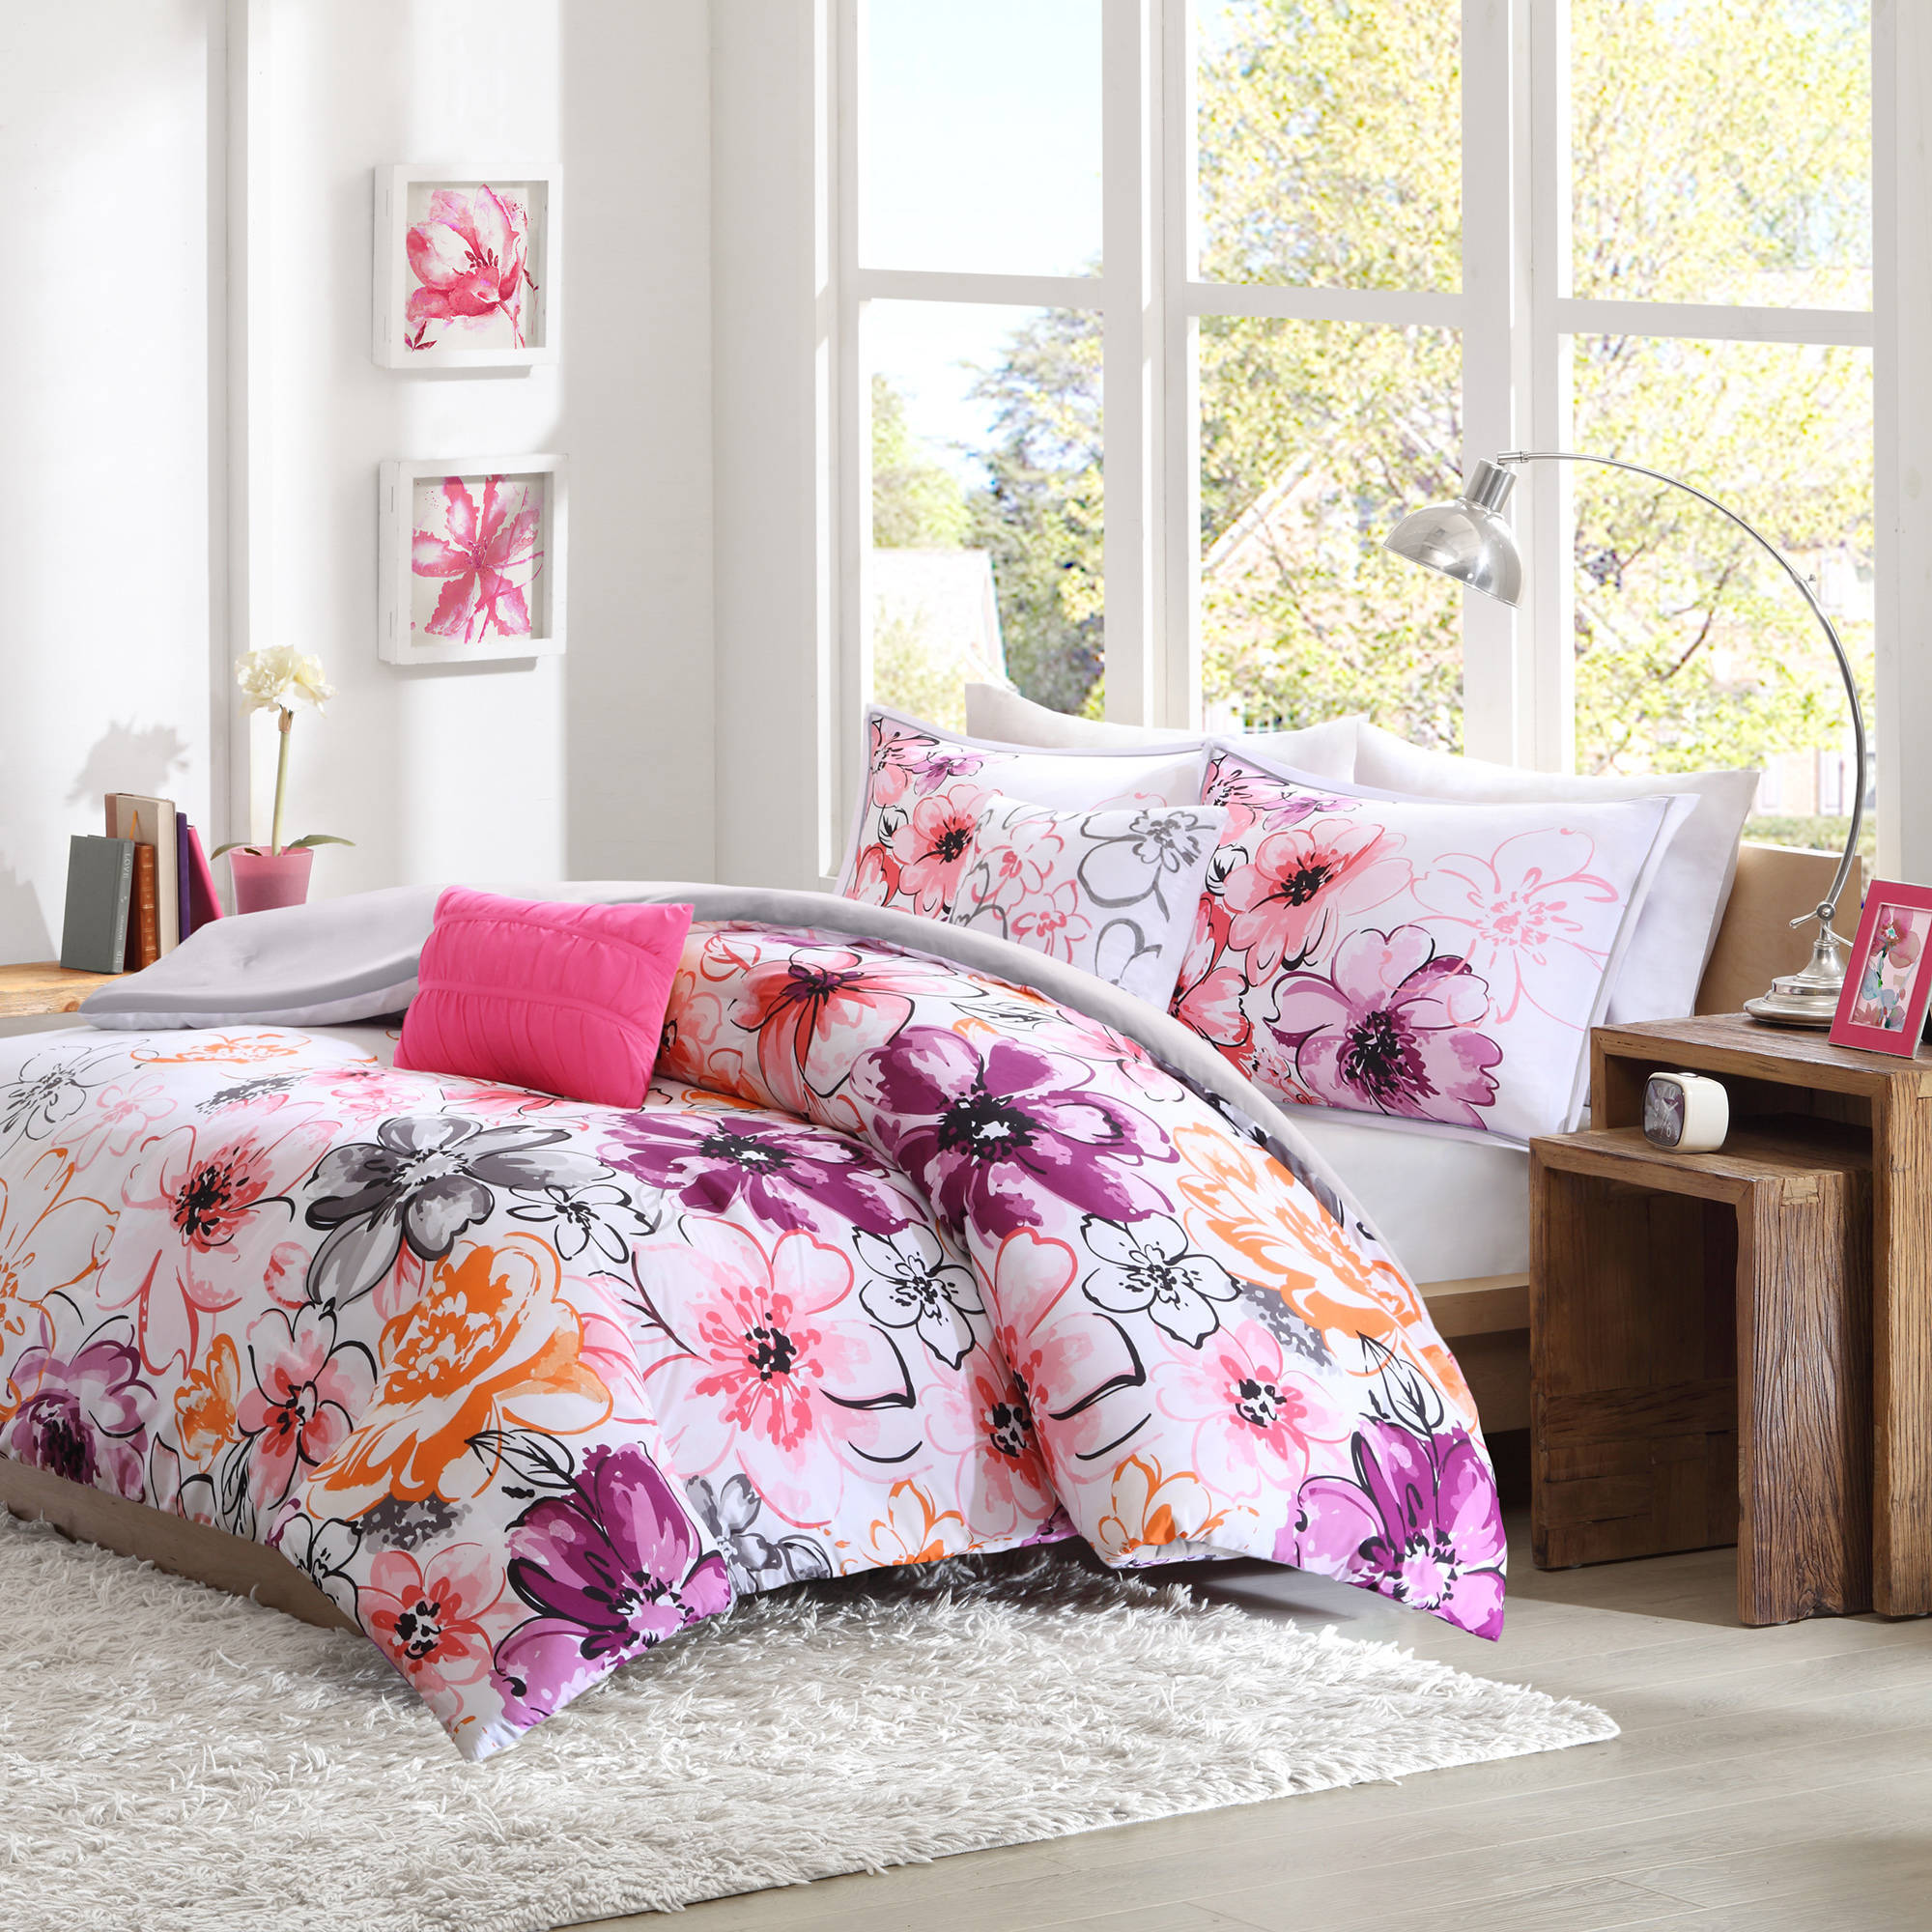 hello purple bedroom kitty ideas comforter decoration comforters set macys cotton bed size queen wonderful jcpenney duvet navy bedding for sets